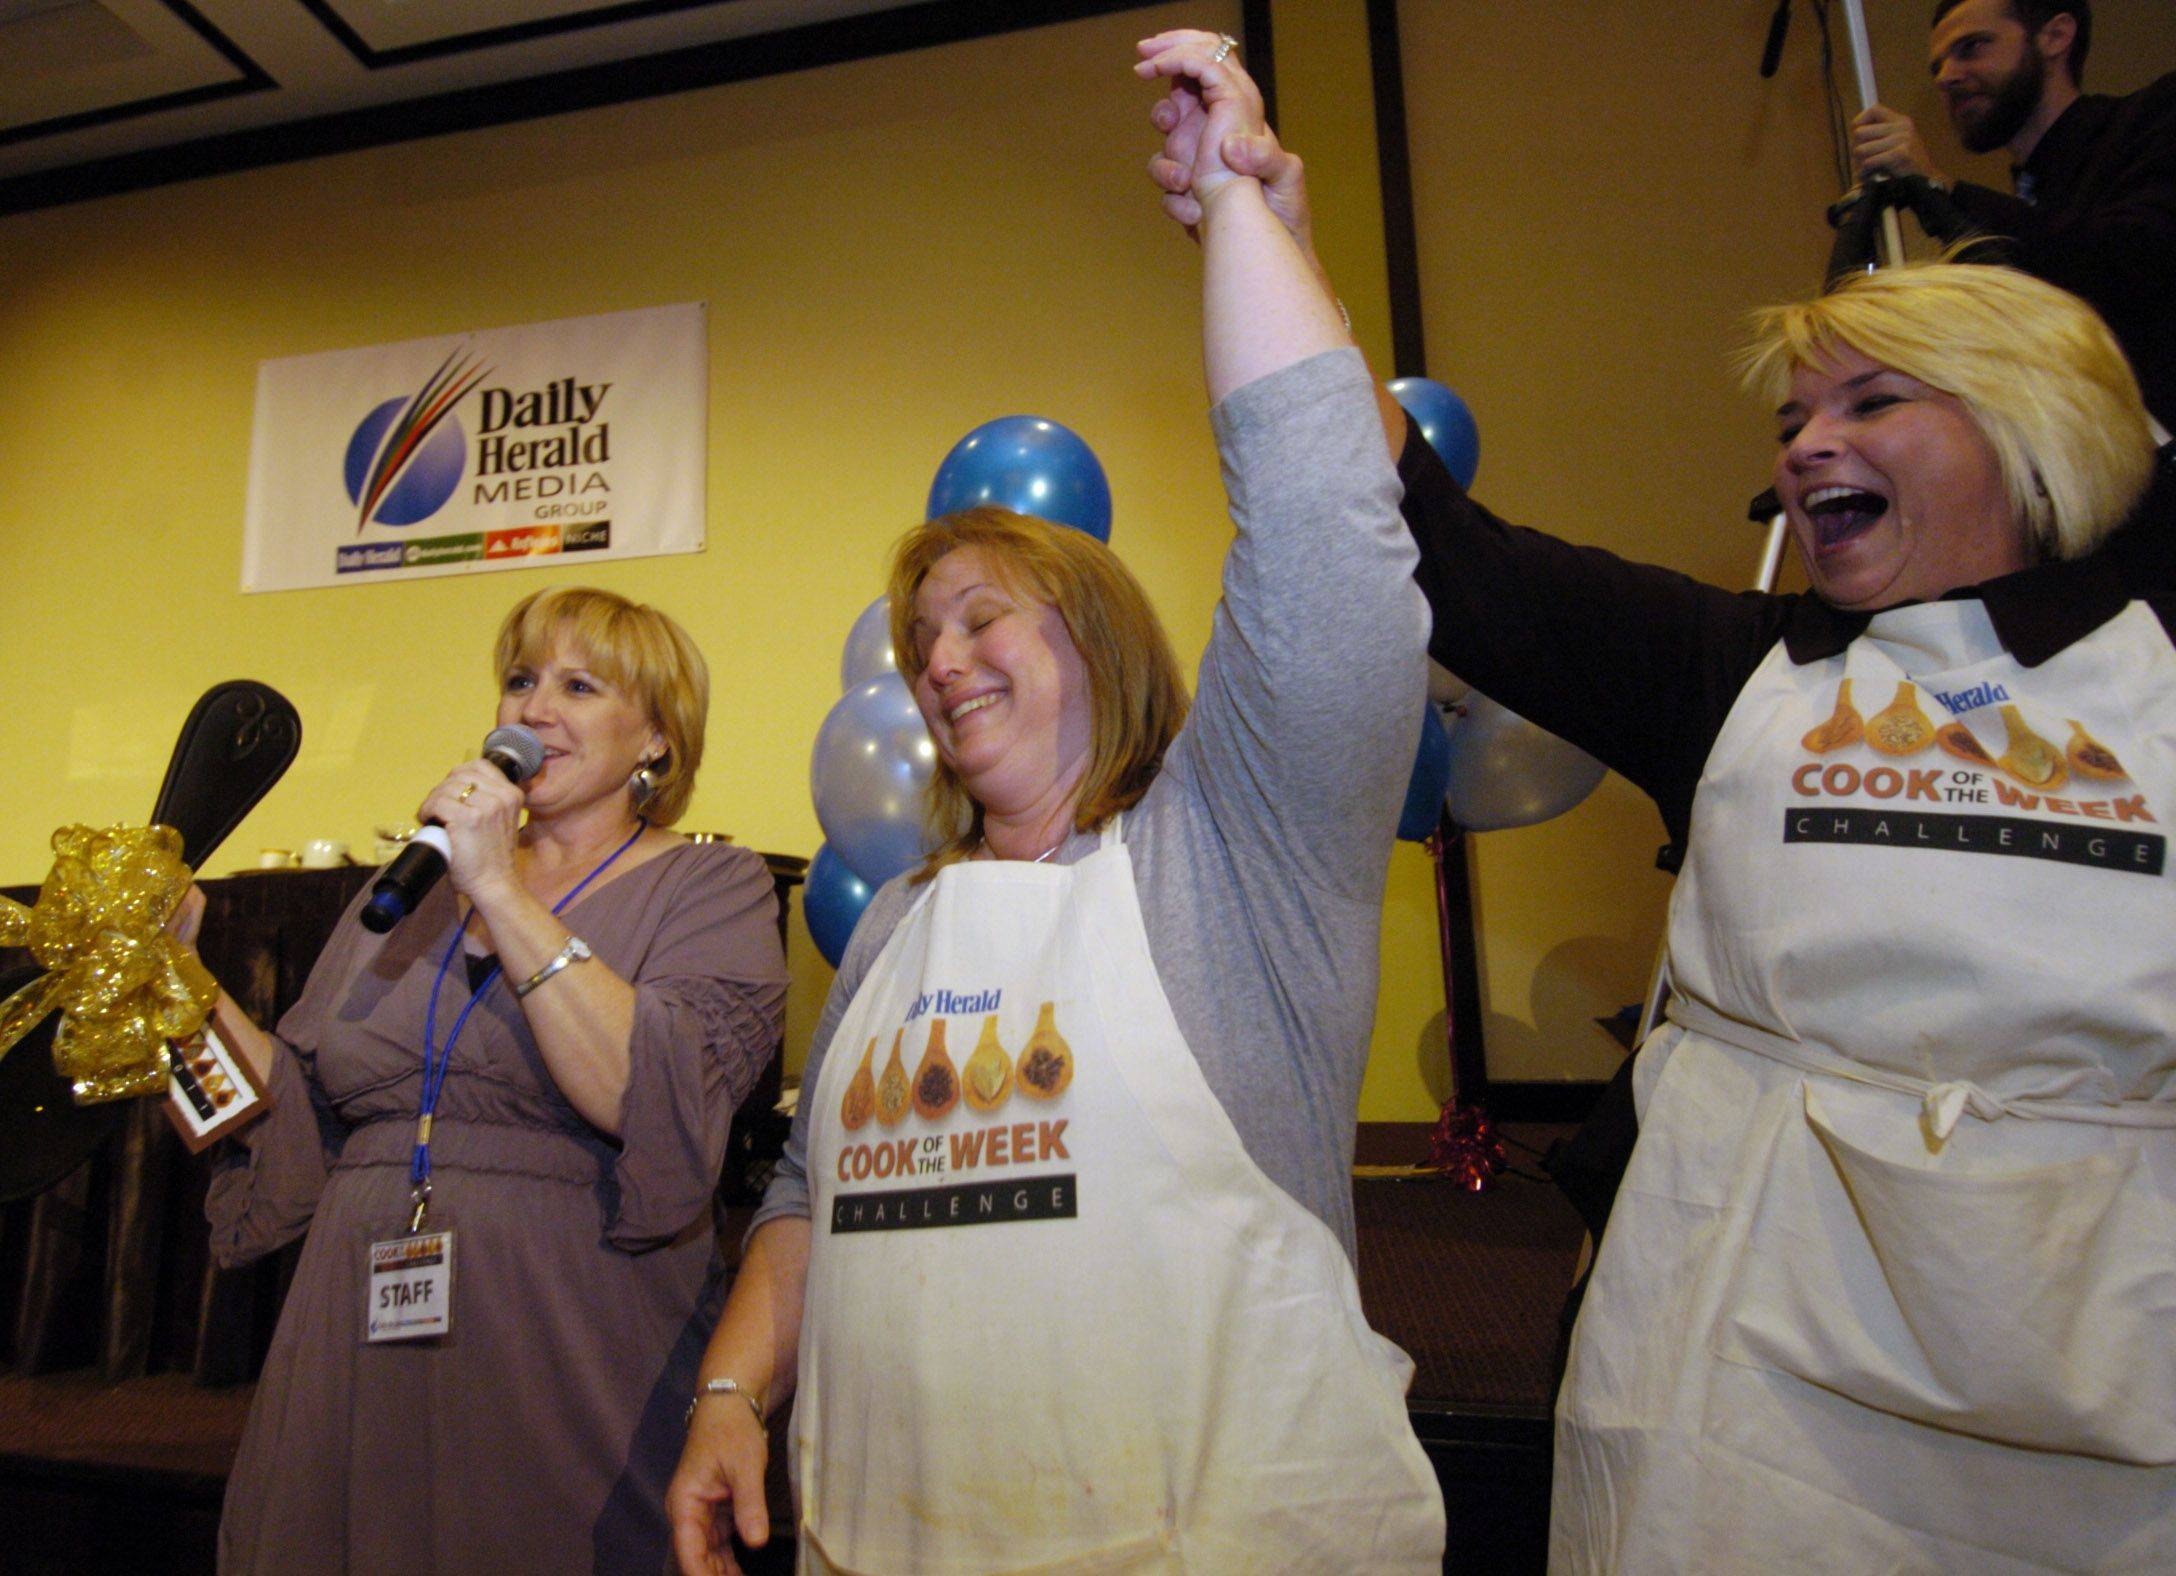 Penny Kazmier, center, with second-place finisher Cate Brusenbach, right, and Daily Herald Food Editor Deb Pankey, left, is the winner of the Cook of the Week Challenge.